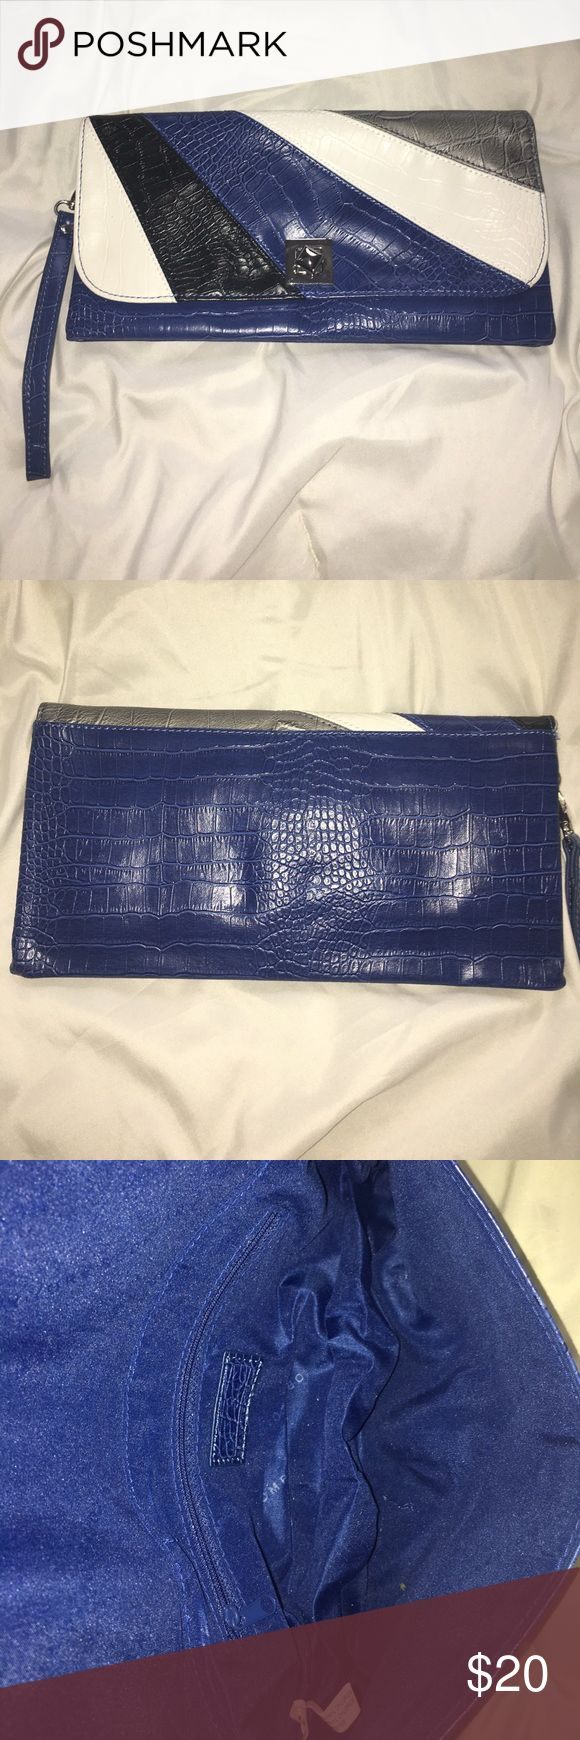 New York & Co. clutch purse Beautiful croc type pattern blue, white, black and silver clutch with wrestler handle! New York and Co. Used once or twice. Brand new condition. New York & Company Bags Clutches & Wristlets